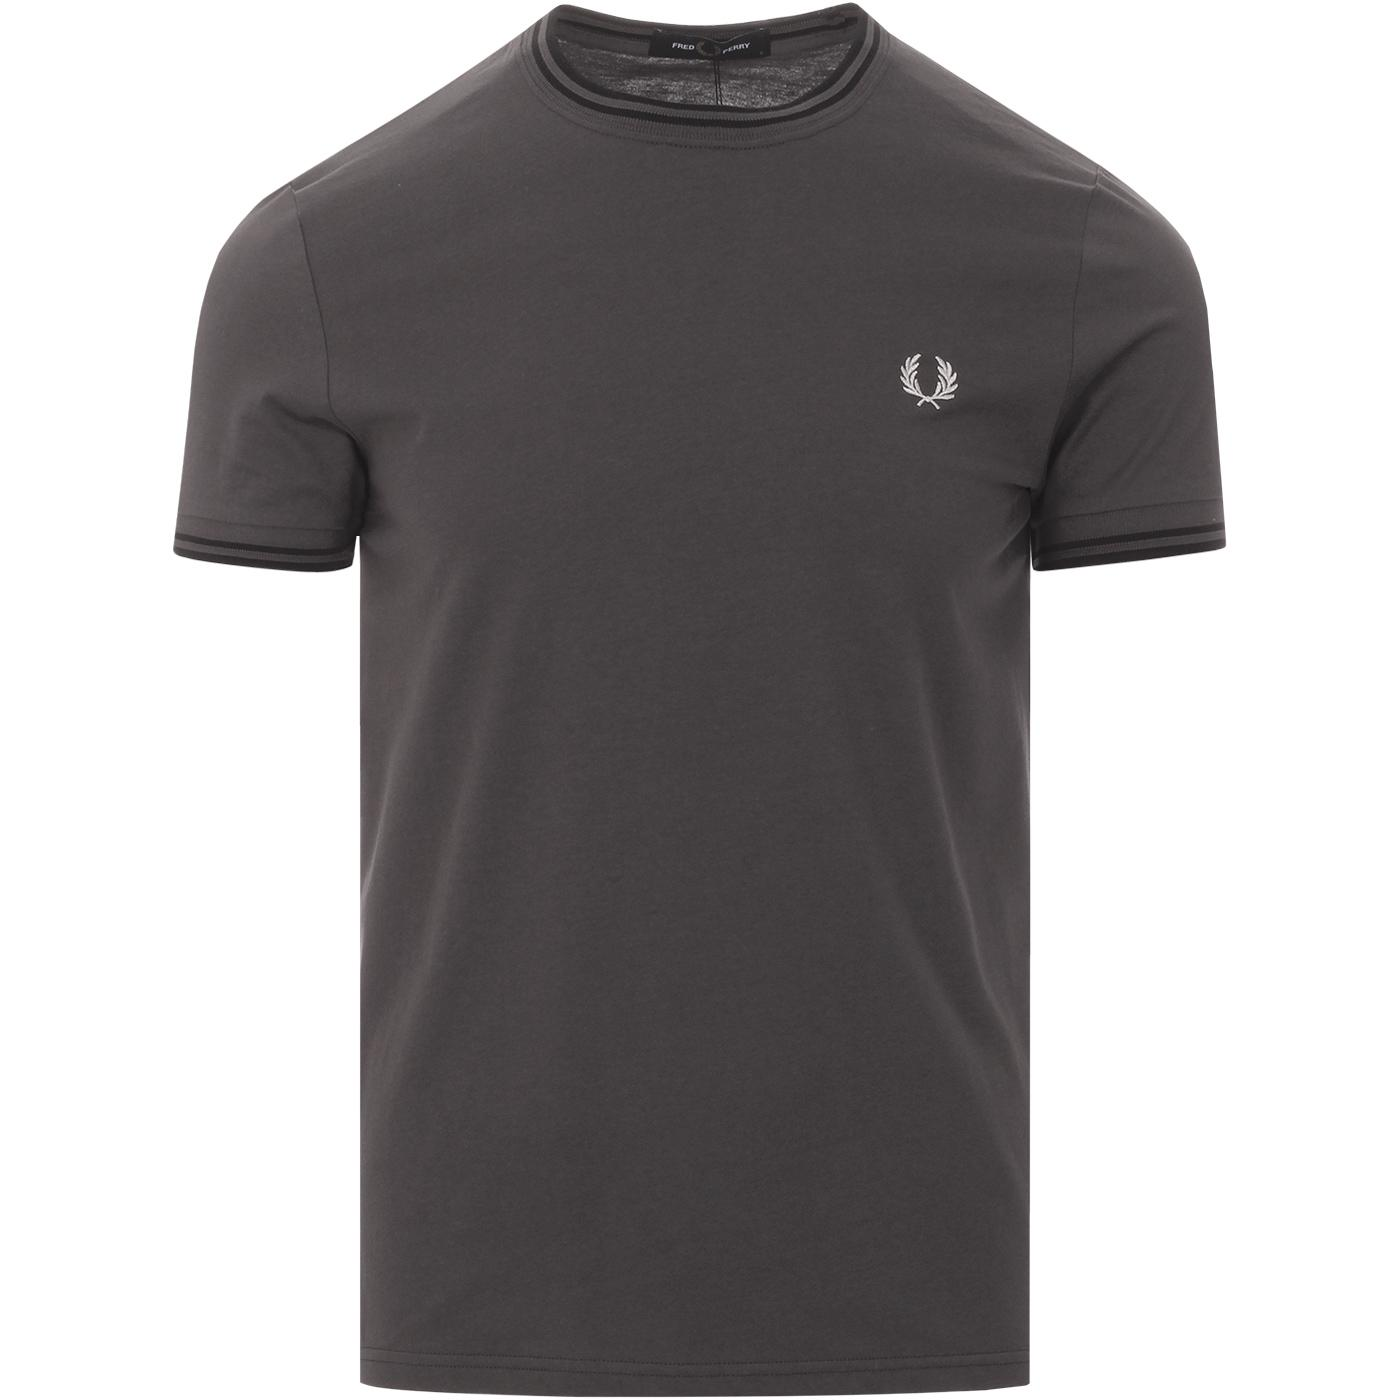 FRED PERRY Retro Mod Twin Tipped T-Shirt GUNMETAL